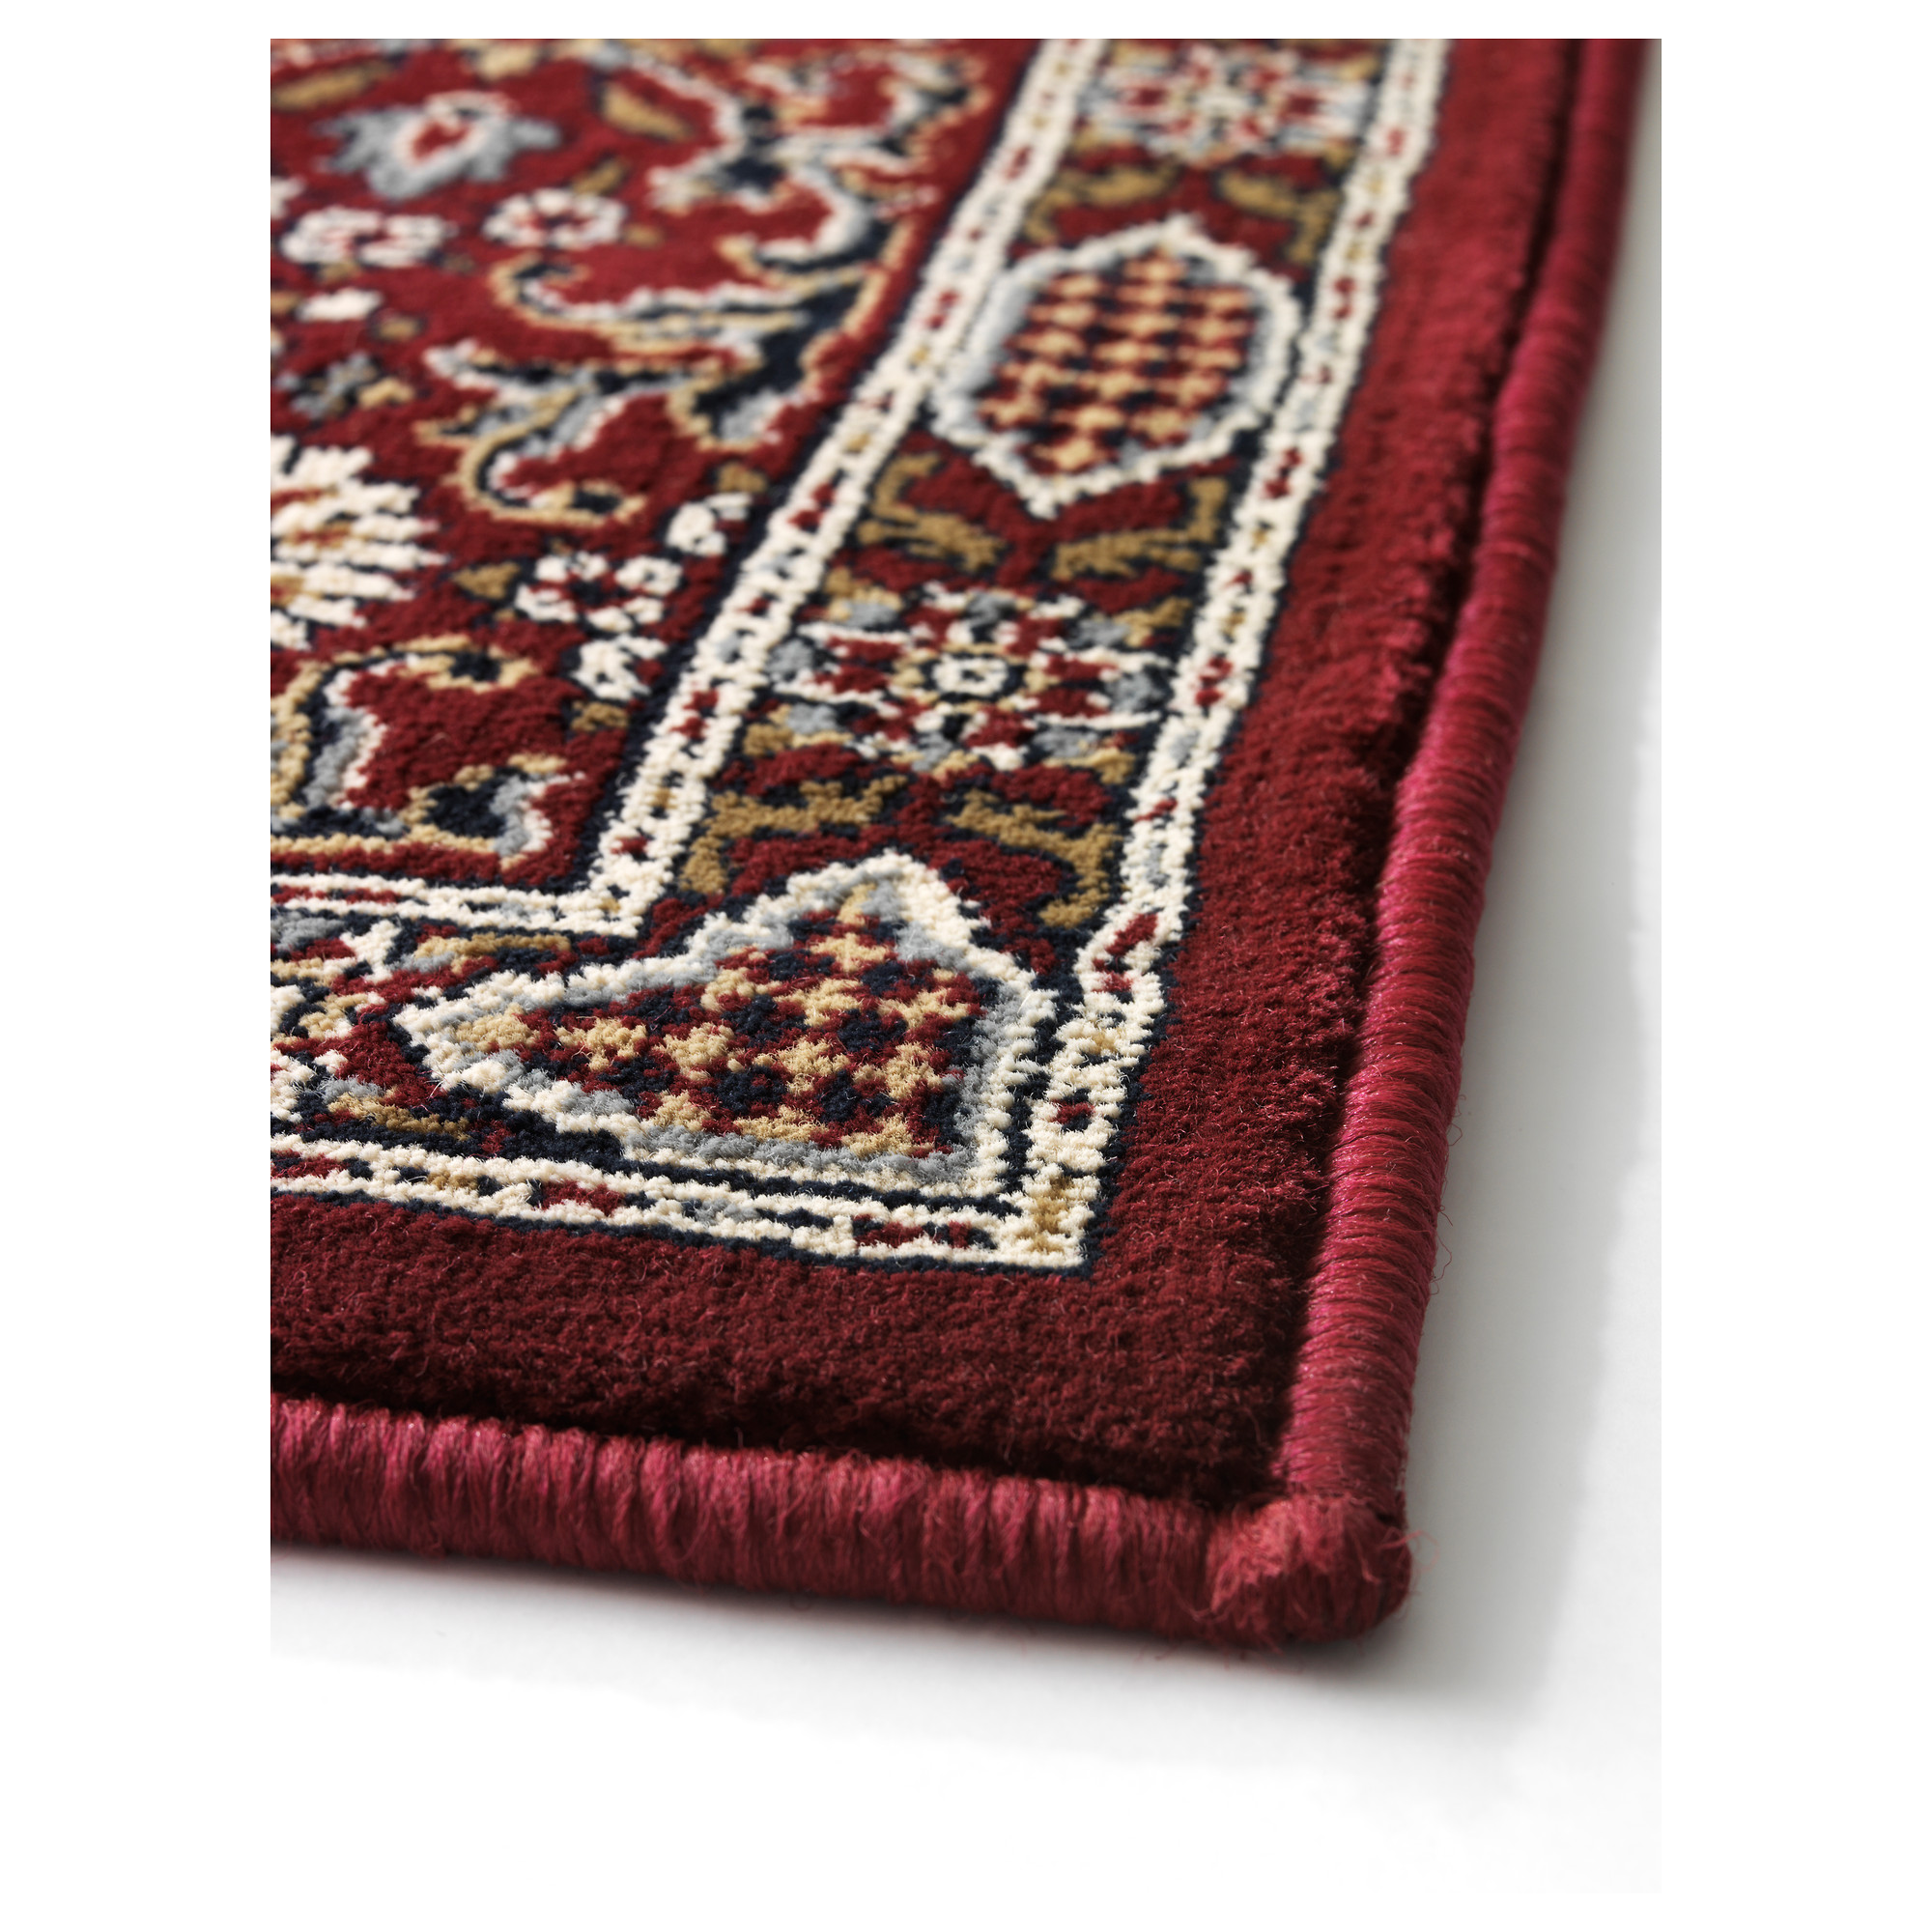 A closeup of a burgundy IKEA Valby Ruta rug.